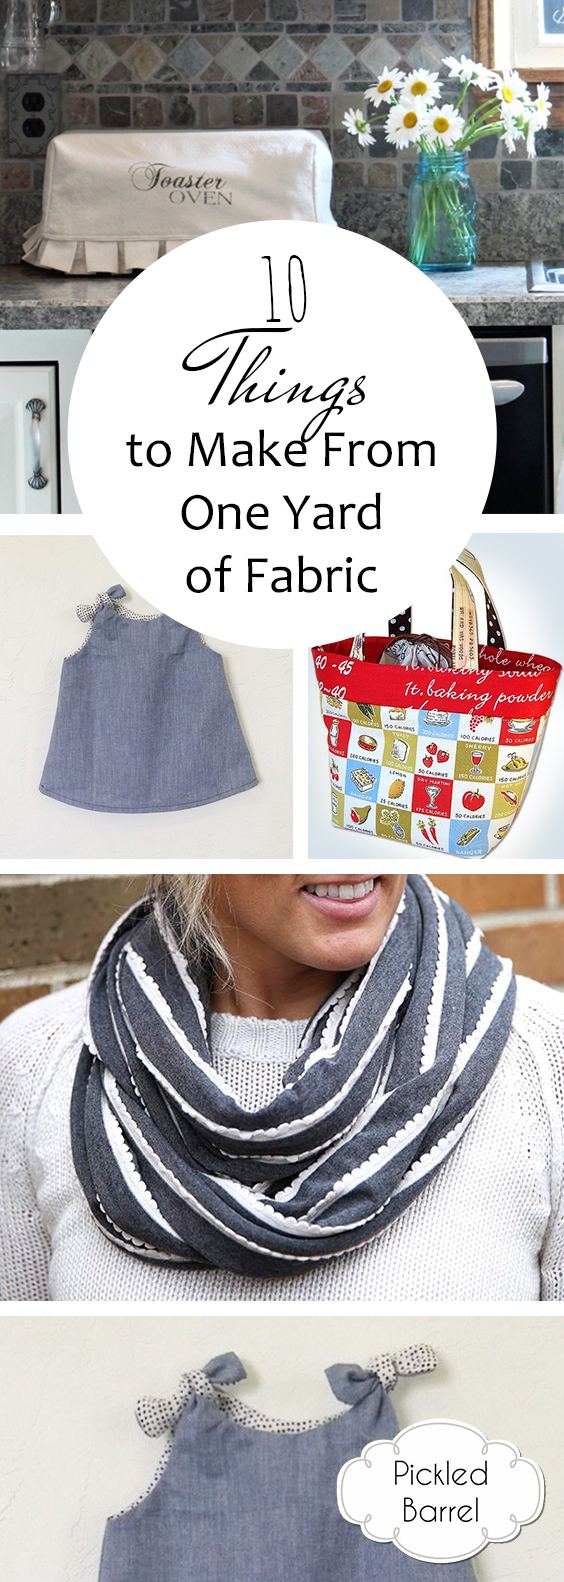 10 Things to Make From One Yard of Fabric – Pickled Barrel